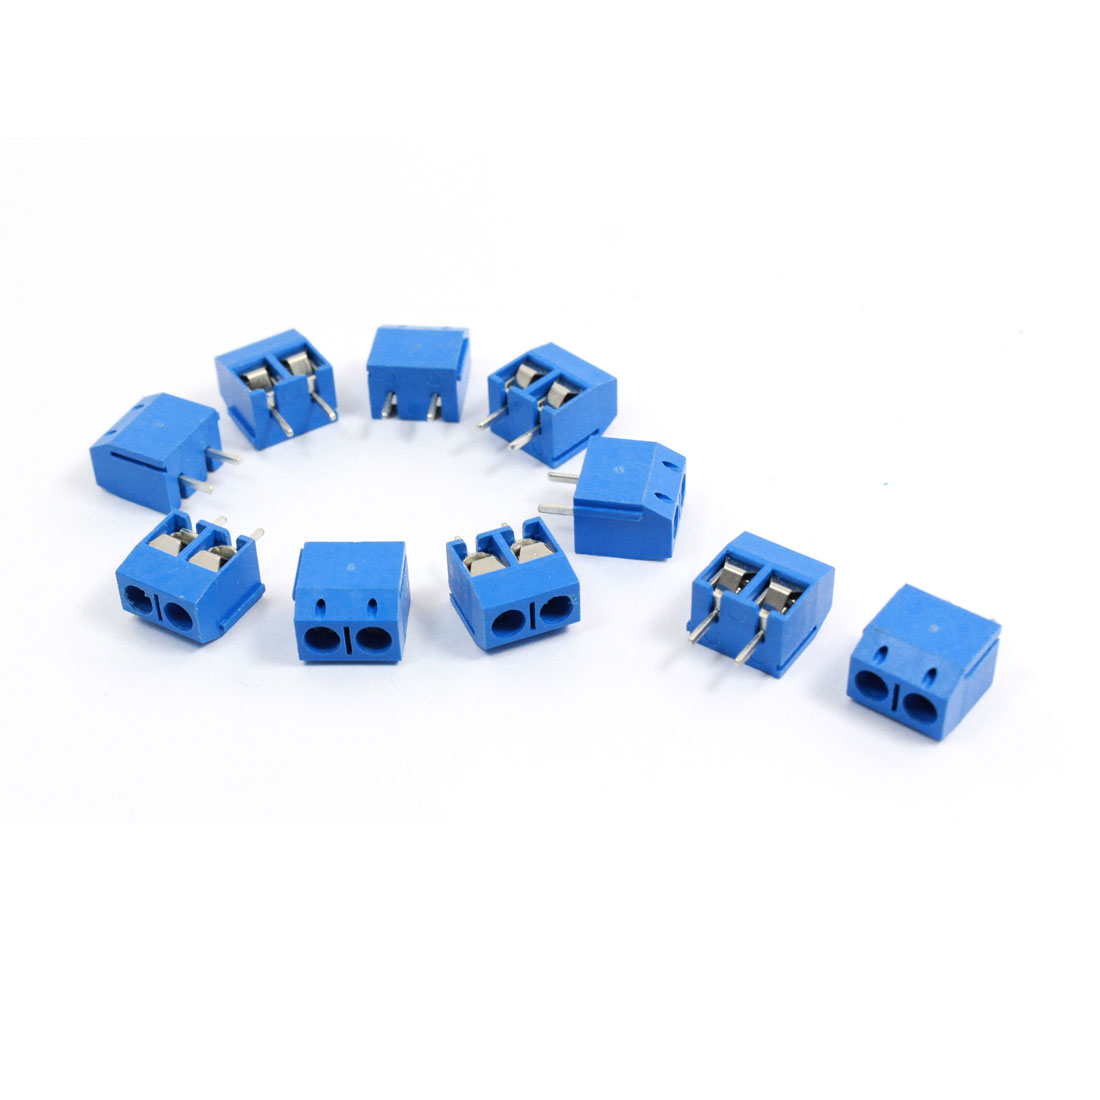 10 Pcs 301-2P 5mm Pitch 2 Terminals AC 300V 10A Blue Screw Block Connector